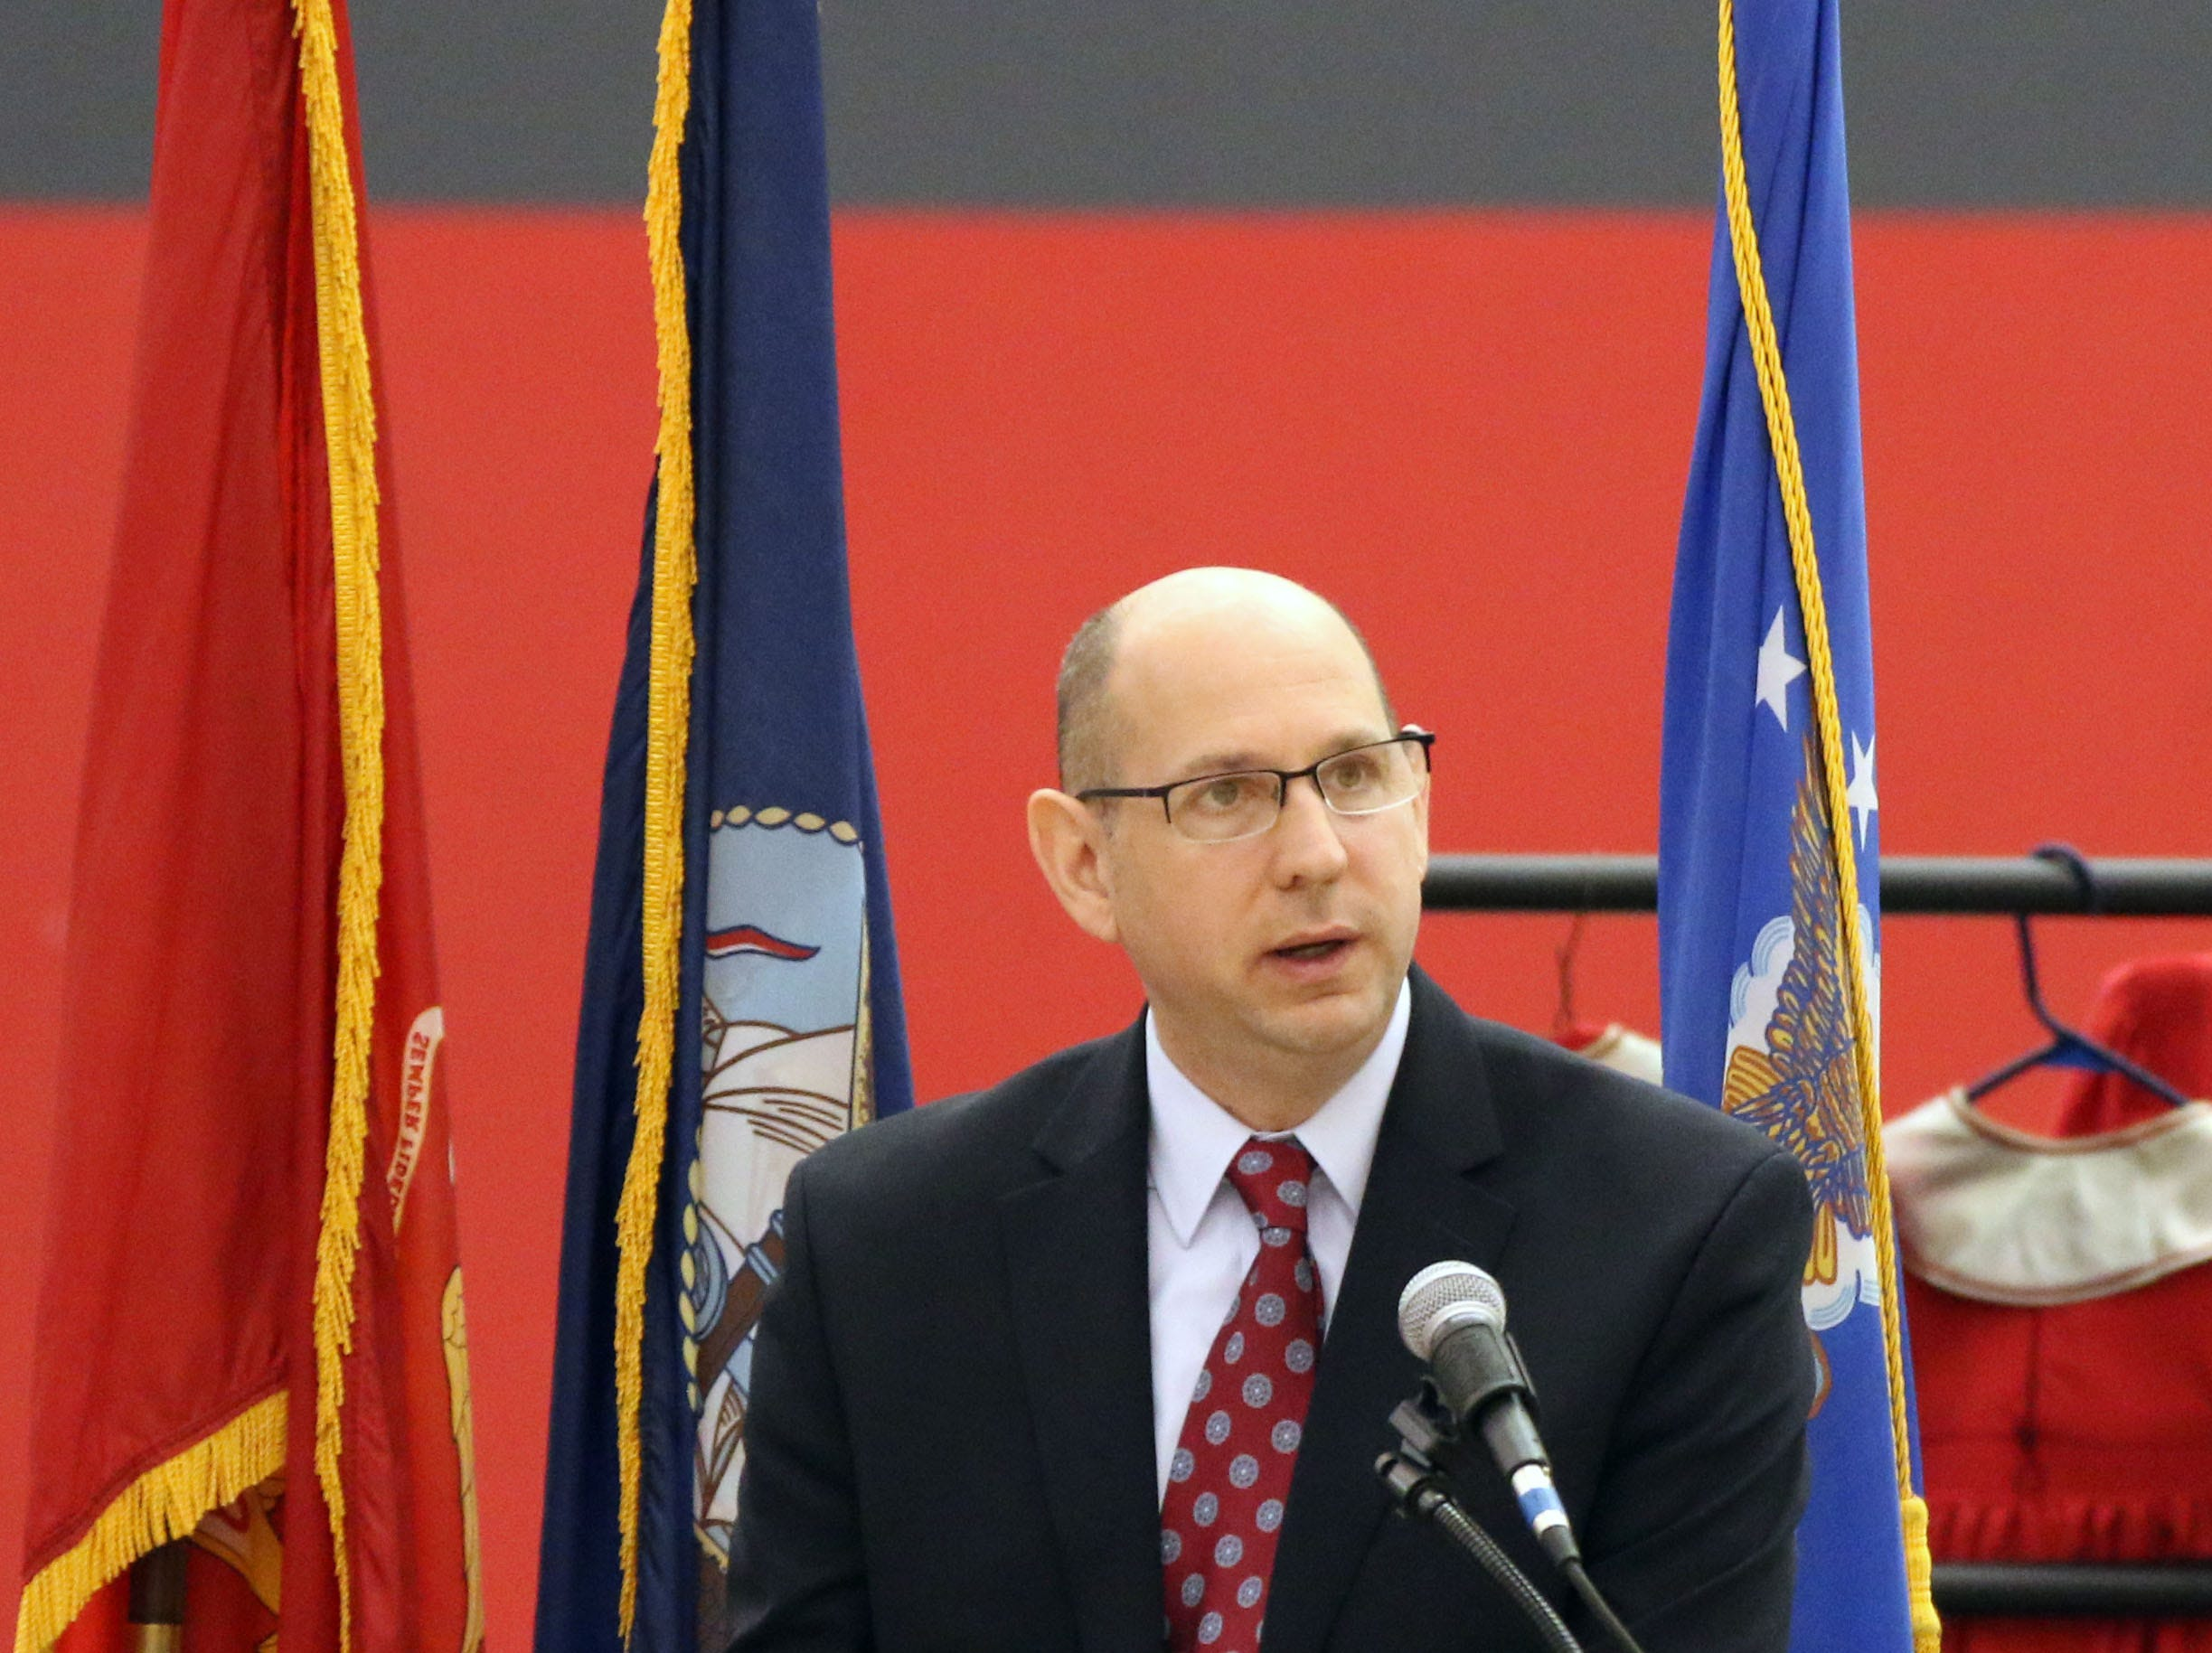 Sheboygan Area School District Superintendent of Schools Seth Harvatine speaks during the Veterans Day Program held at Sheboygan South High School Friday, November 9, 2018, in Sheboygan, Wis.